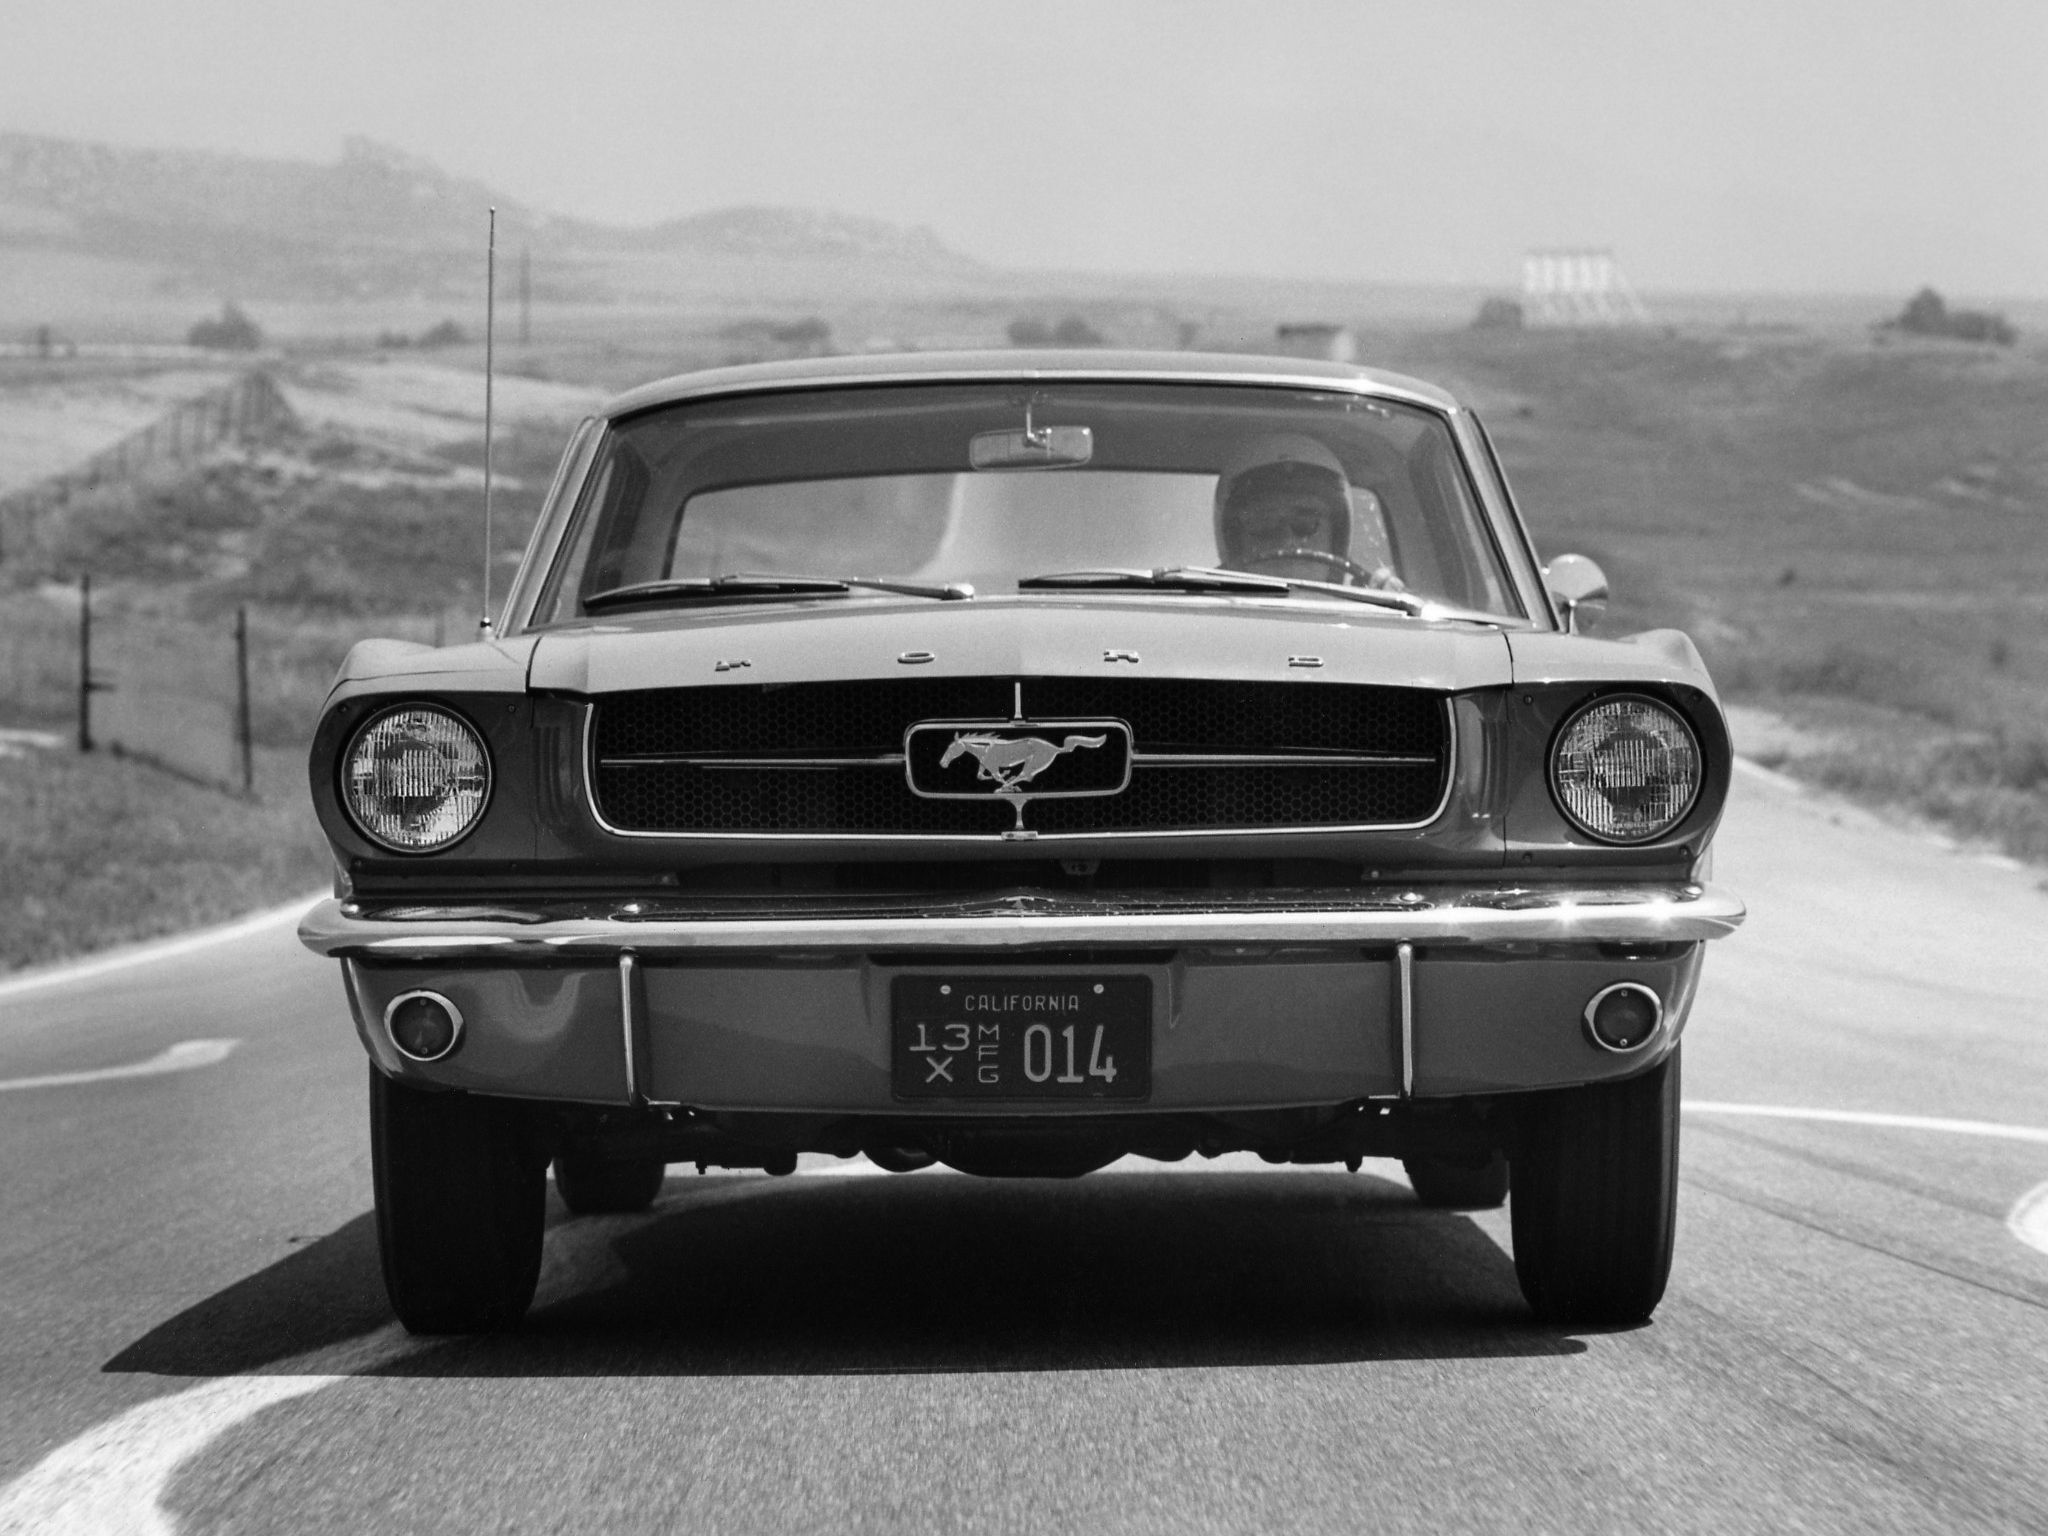 Ford Vintage Mustang Hd Wallpapers W Note Ford Mustang Classic